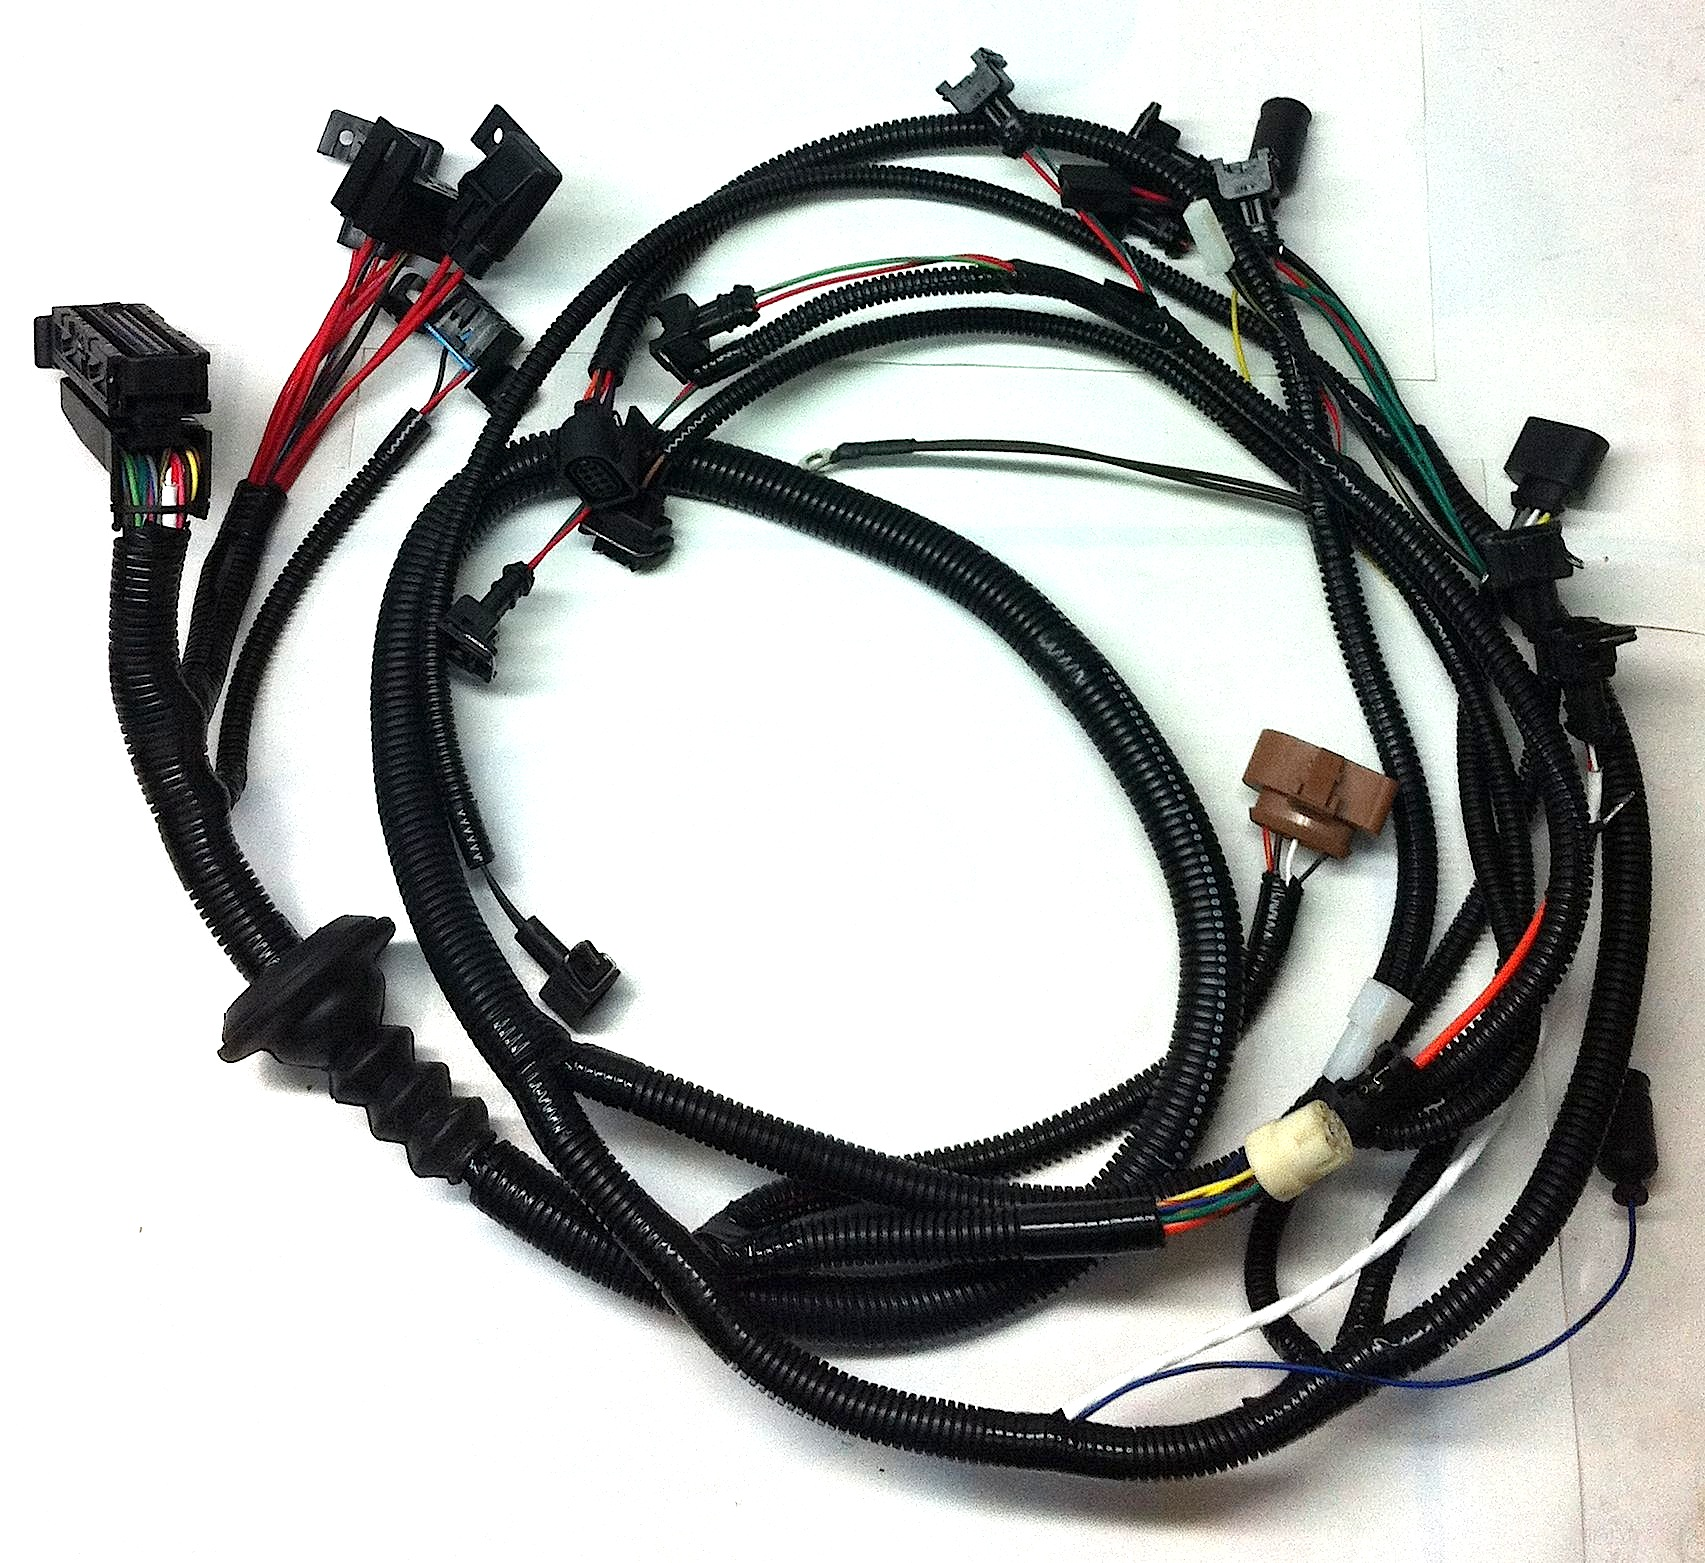 hight resolution of 2lr tiico conversion wiring harness foreign auto supply inc auto wiring harness connectors auto wiring harness